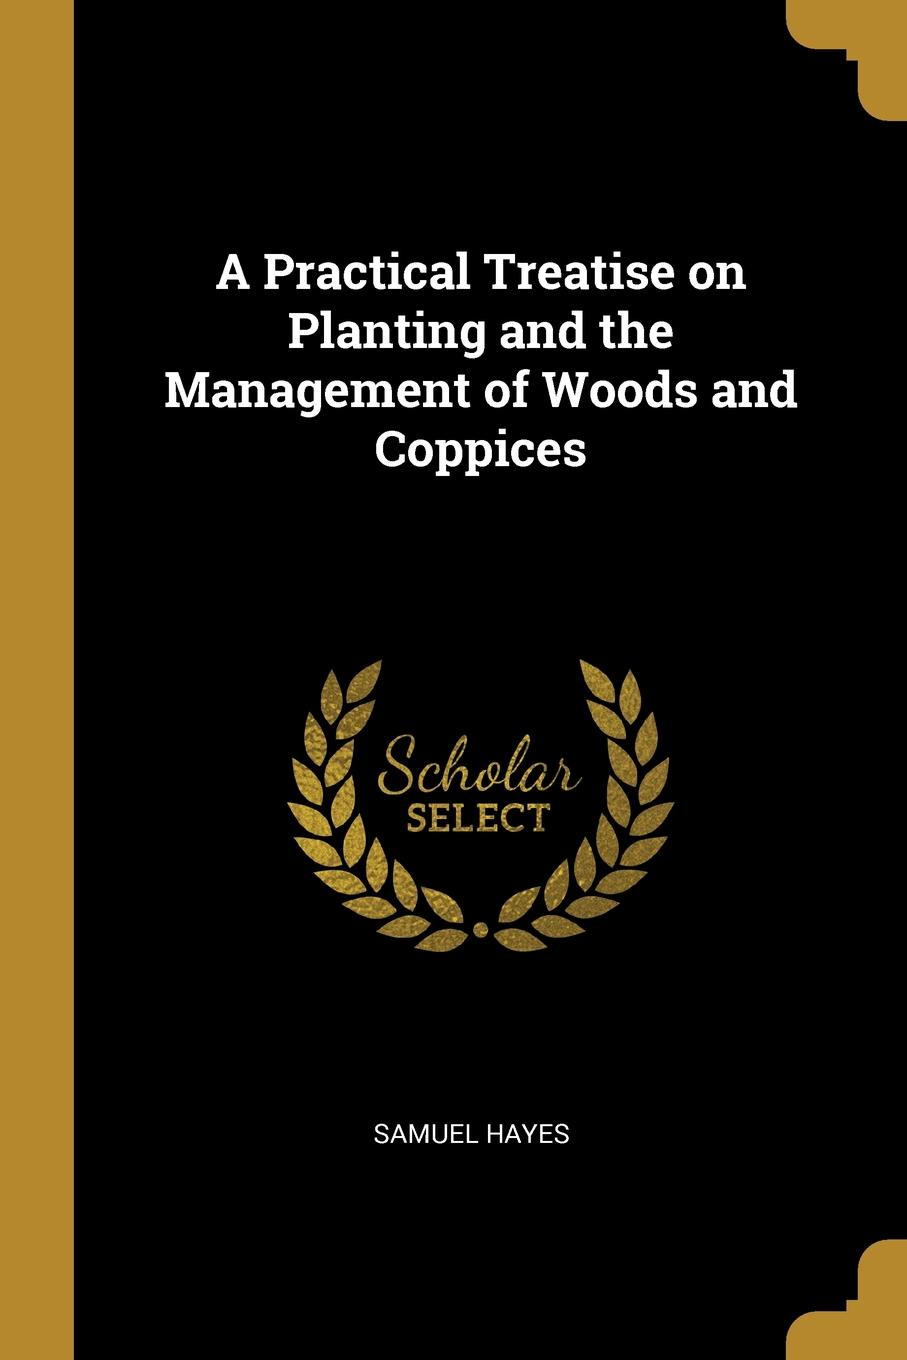 Samuel Hayes. A Practical Treatise on Planting and the Management of Woods and Coppices